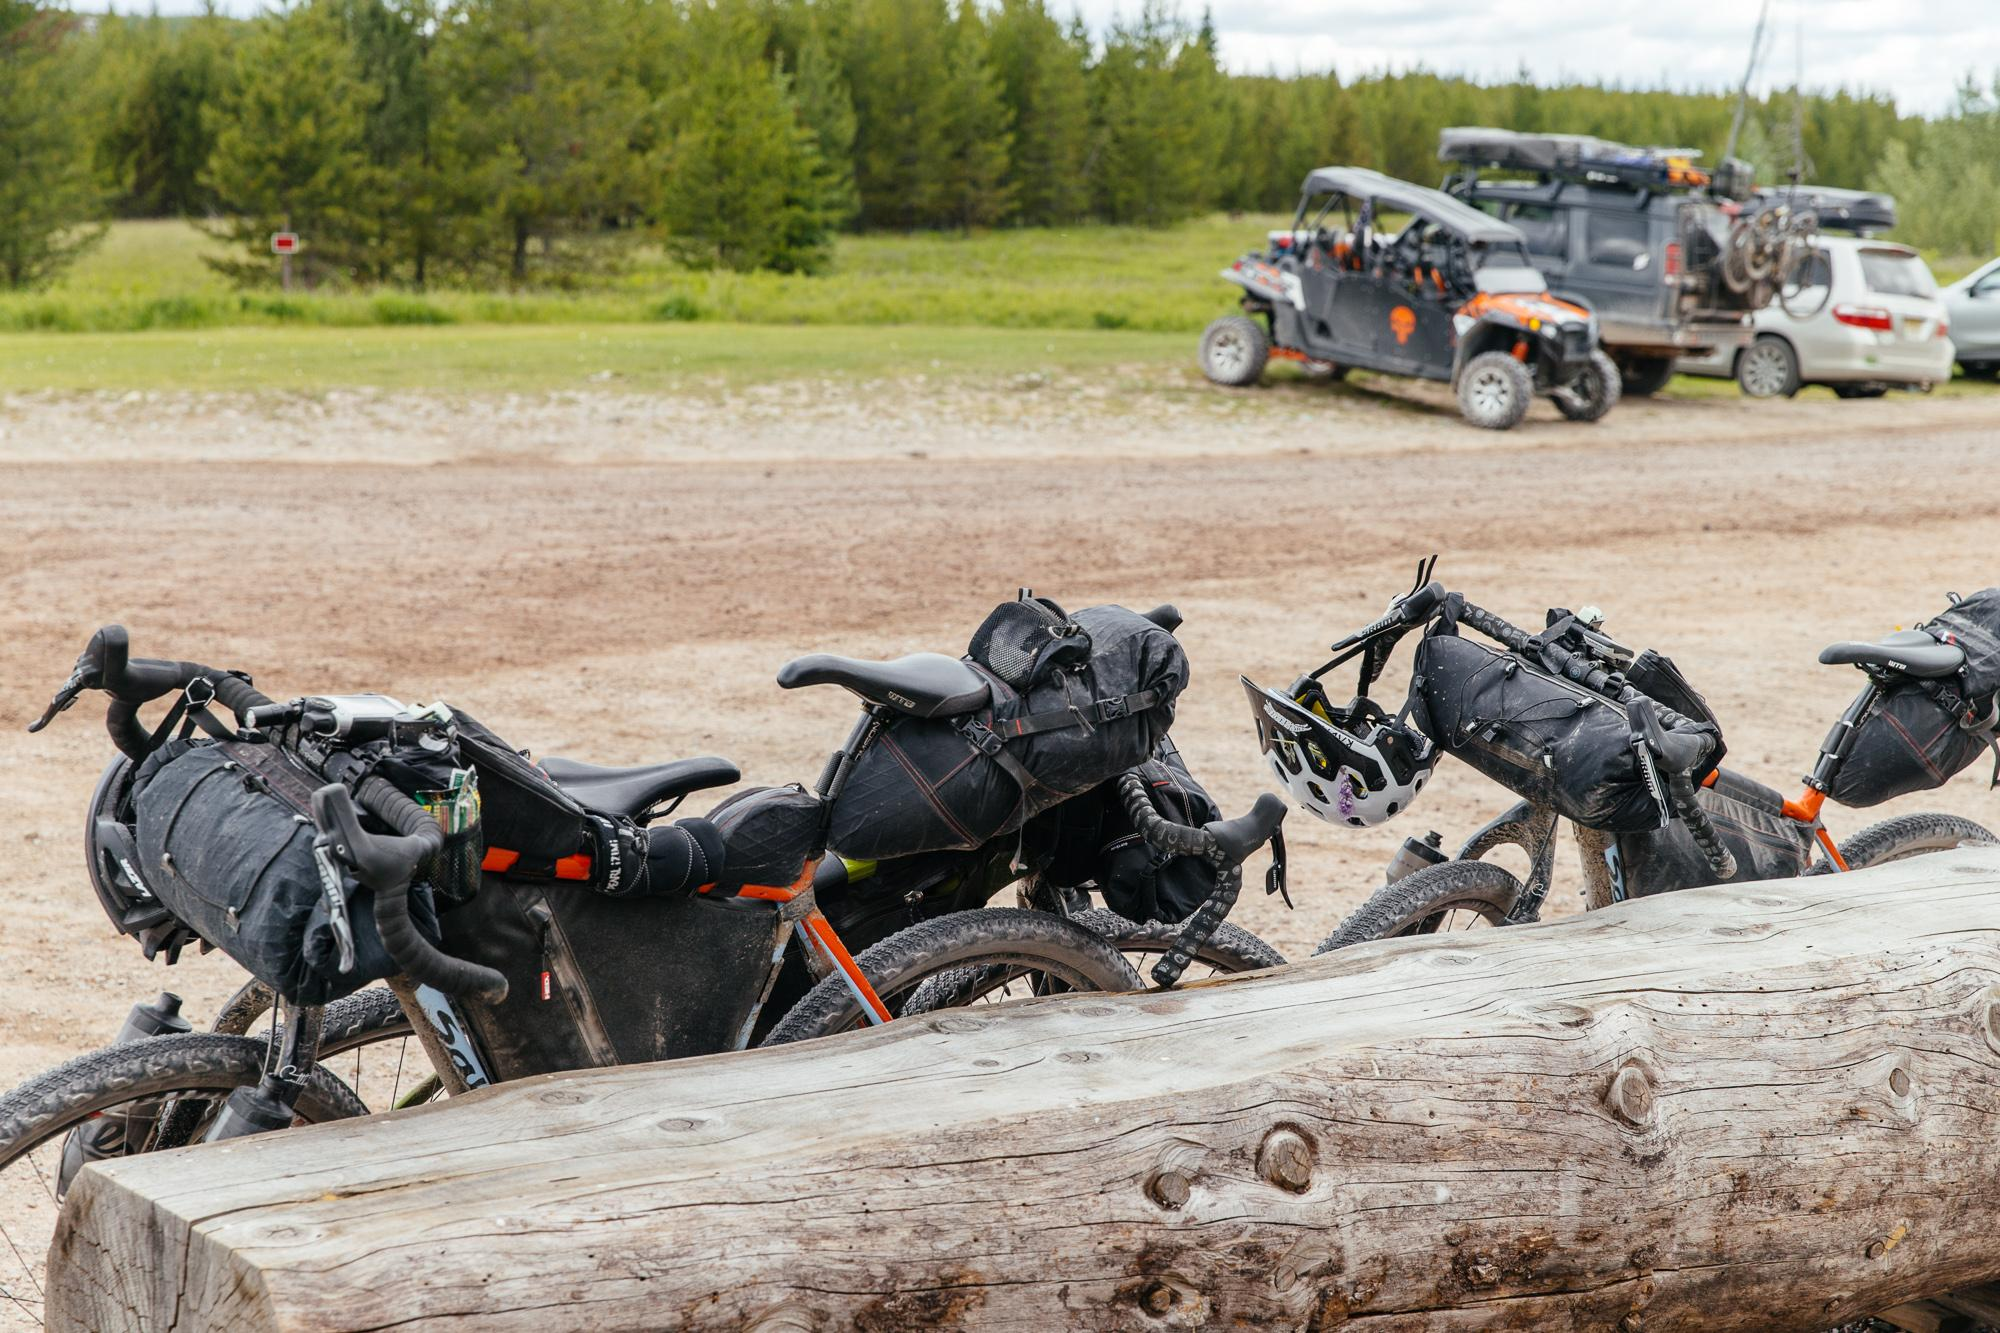 True expedition vehicles with some toys in the background.